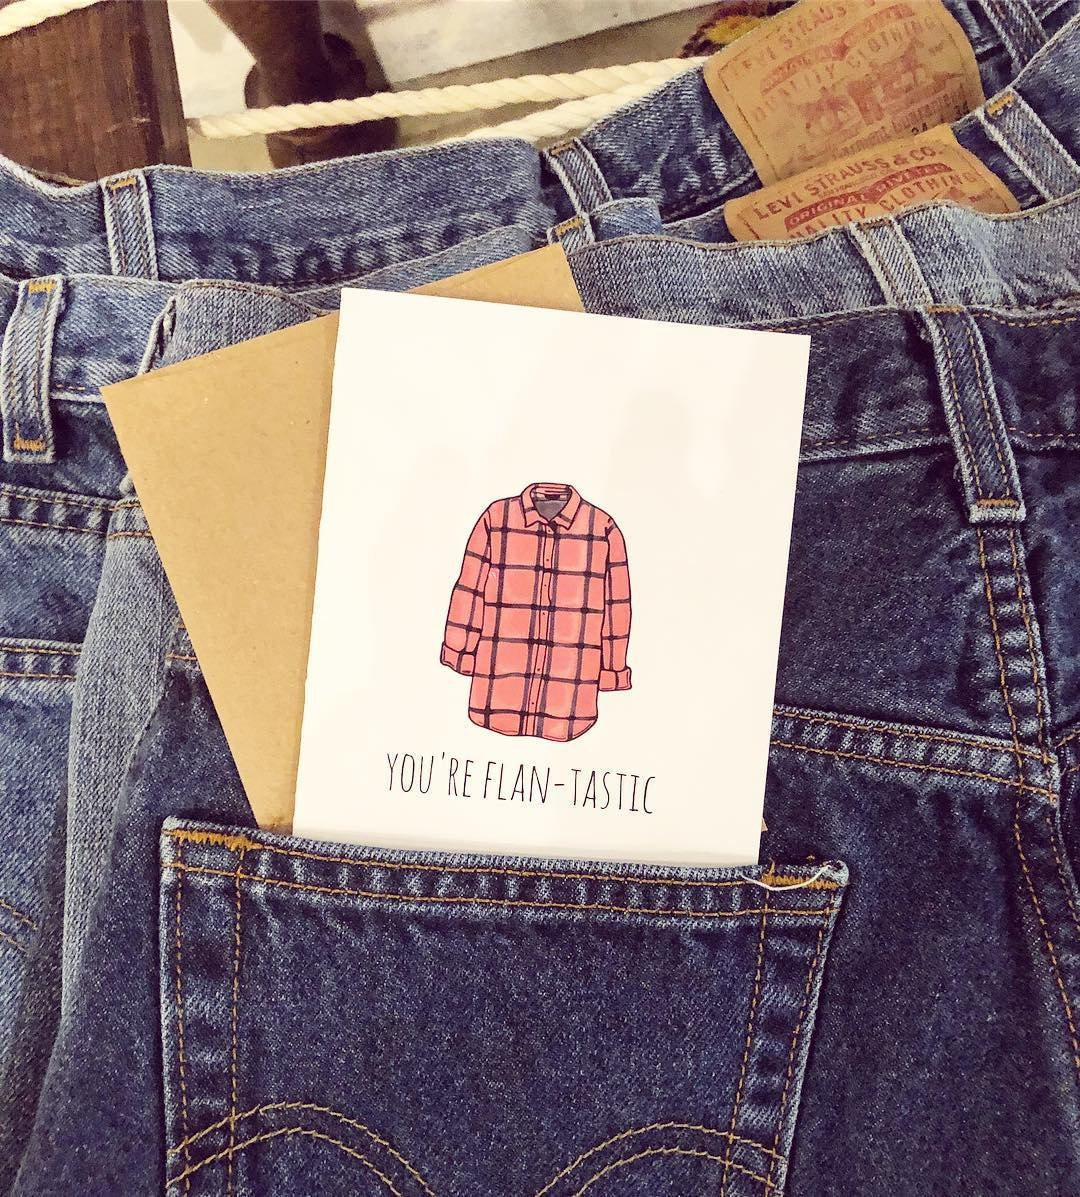 levis, flannel, cards, greeting cards, shop small, womenowned